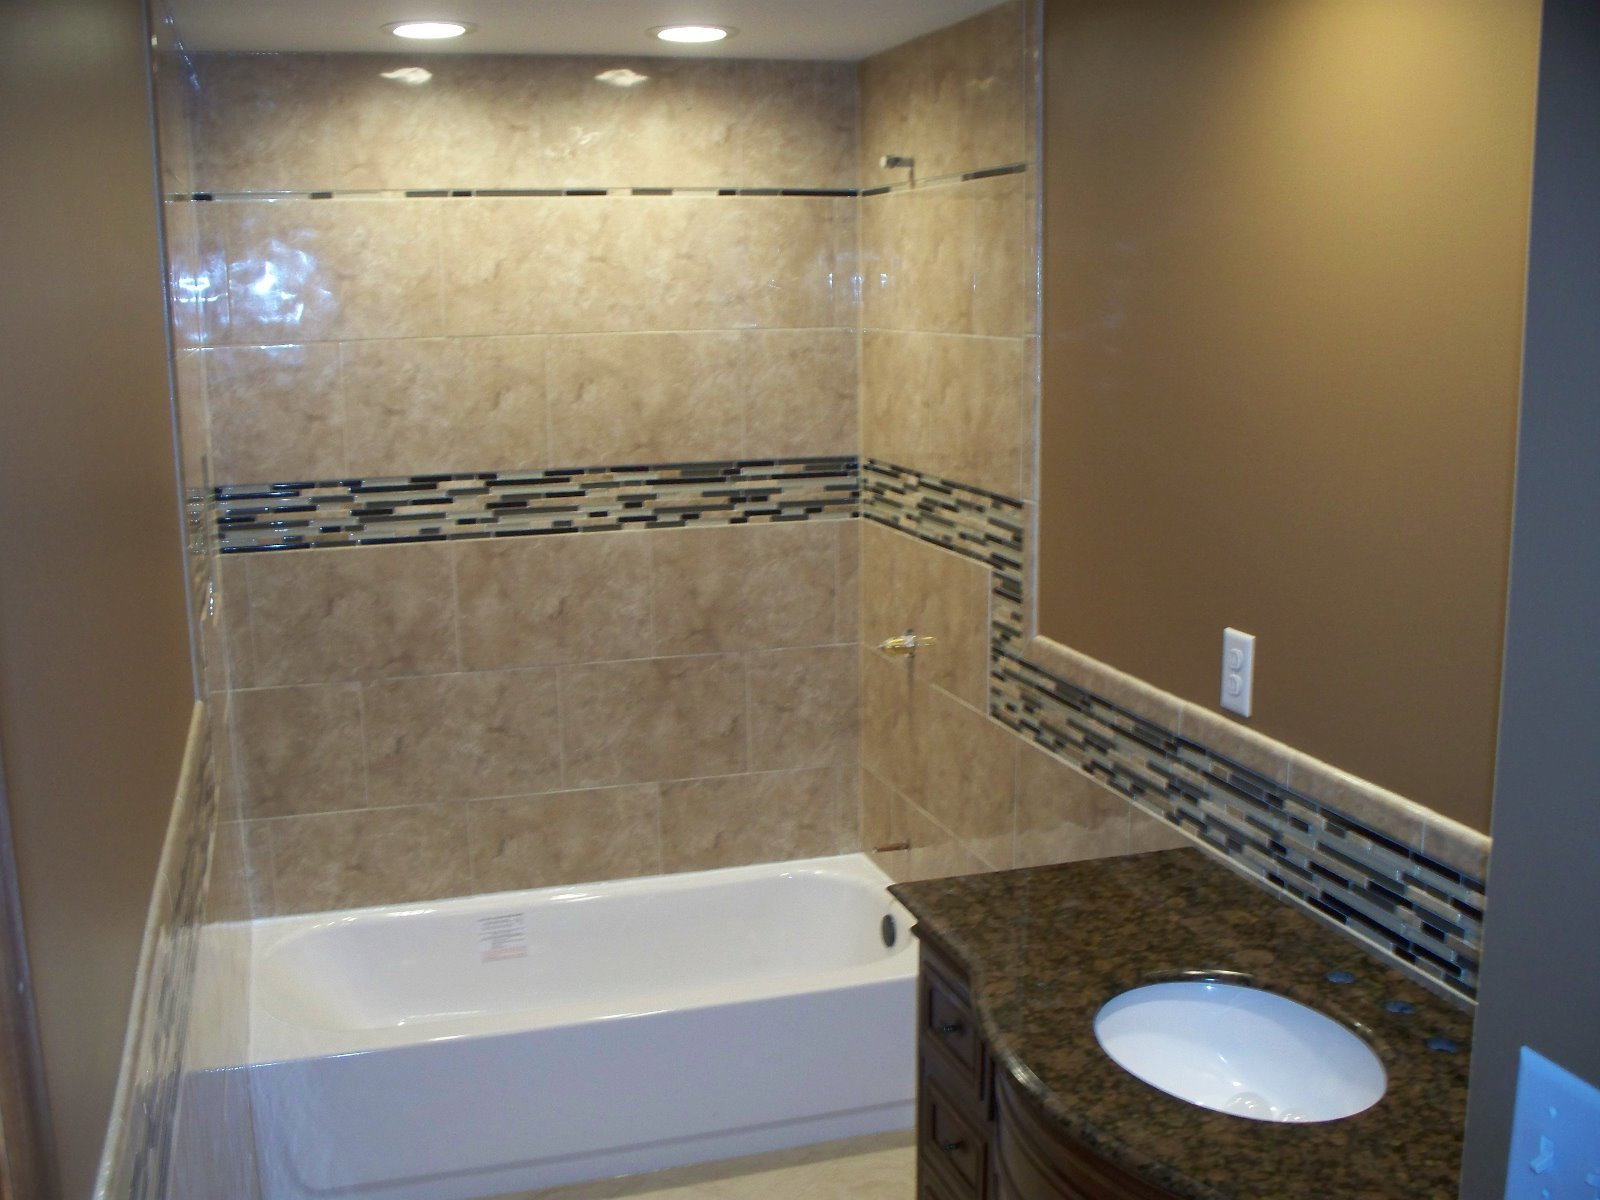 bathroom an baker rating sm is association recipient in of a remodeling nkba best builder shane mk and studios kitchen from home phoenix the better bath contractors contractor national remodel member licensed